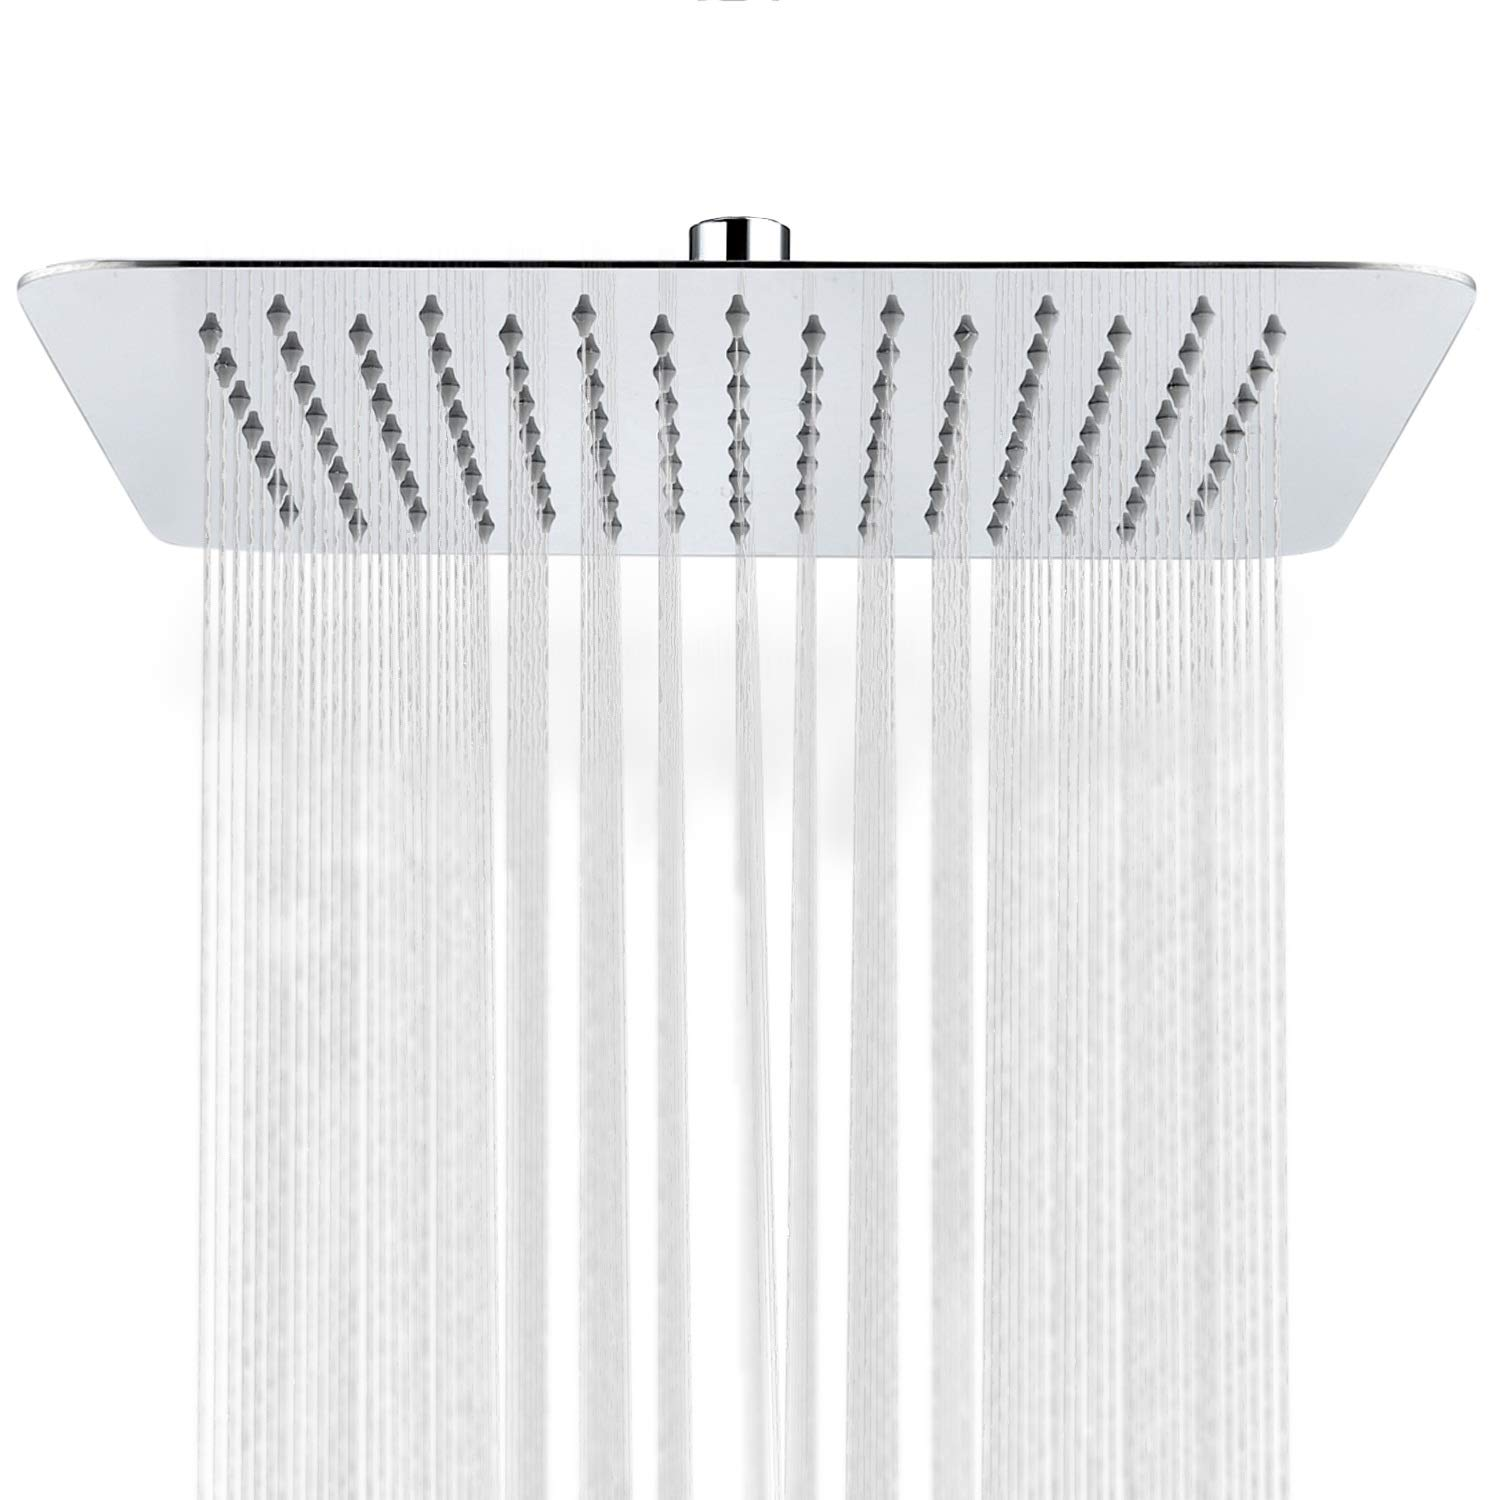 SR SUN RISE 12 Inch Stainless Steel Large Square Rainfall Shower Head